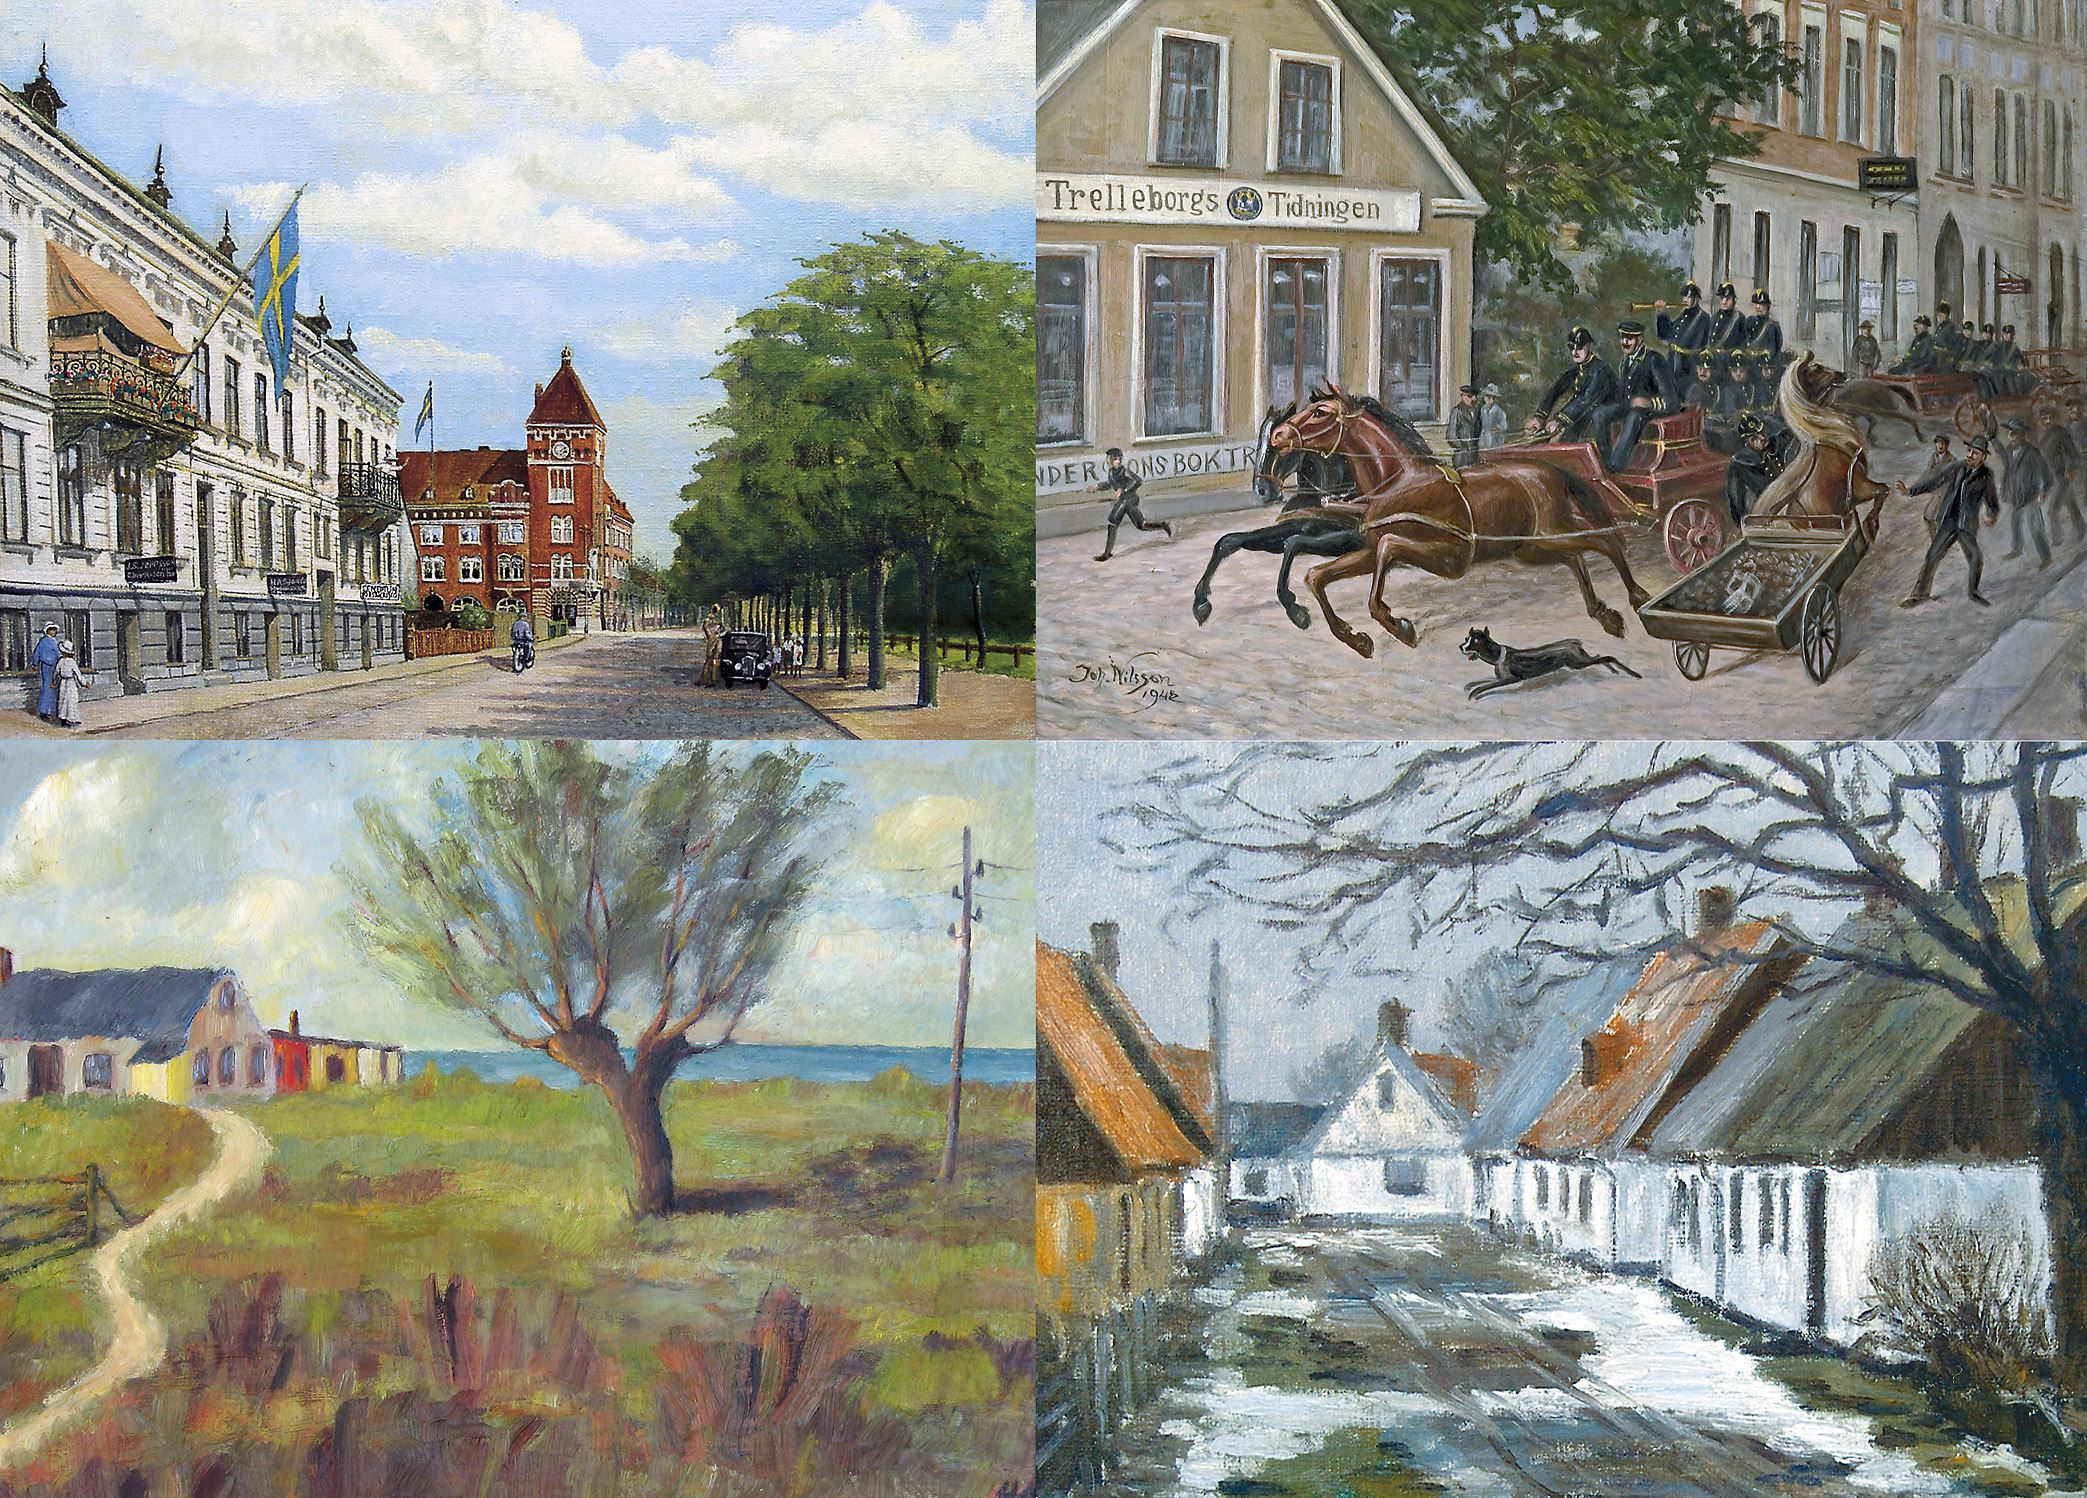 Trelleborgs museum,  © Trelleborgs museum,  Exhibition - Trelleborg through artist's eyes ...